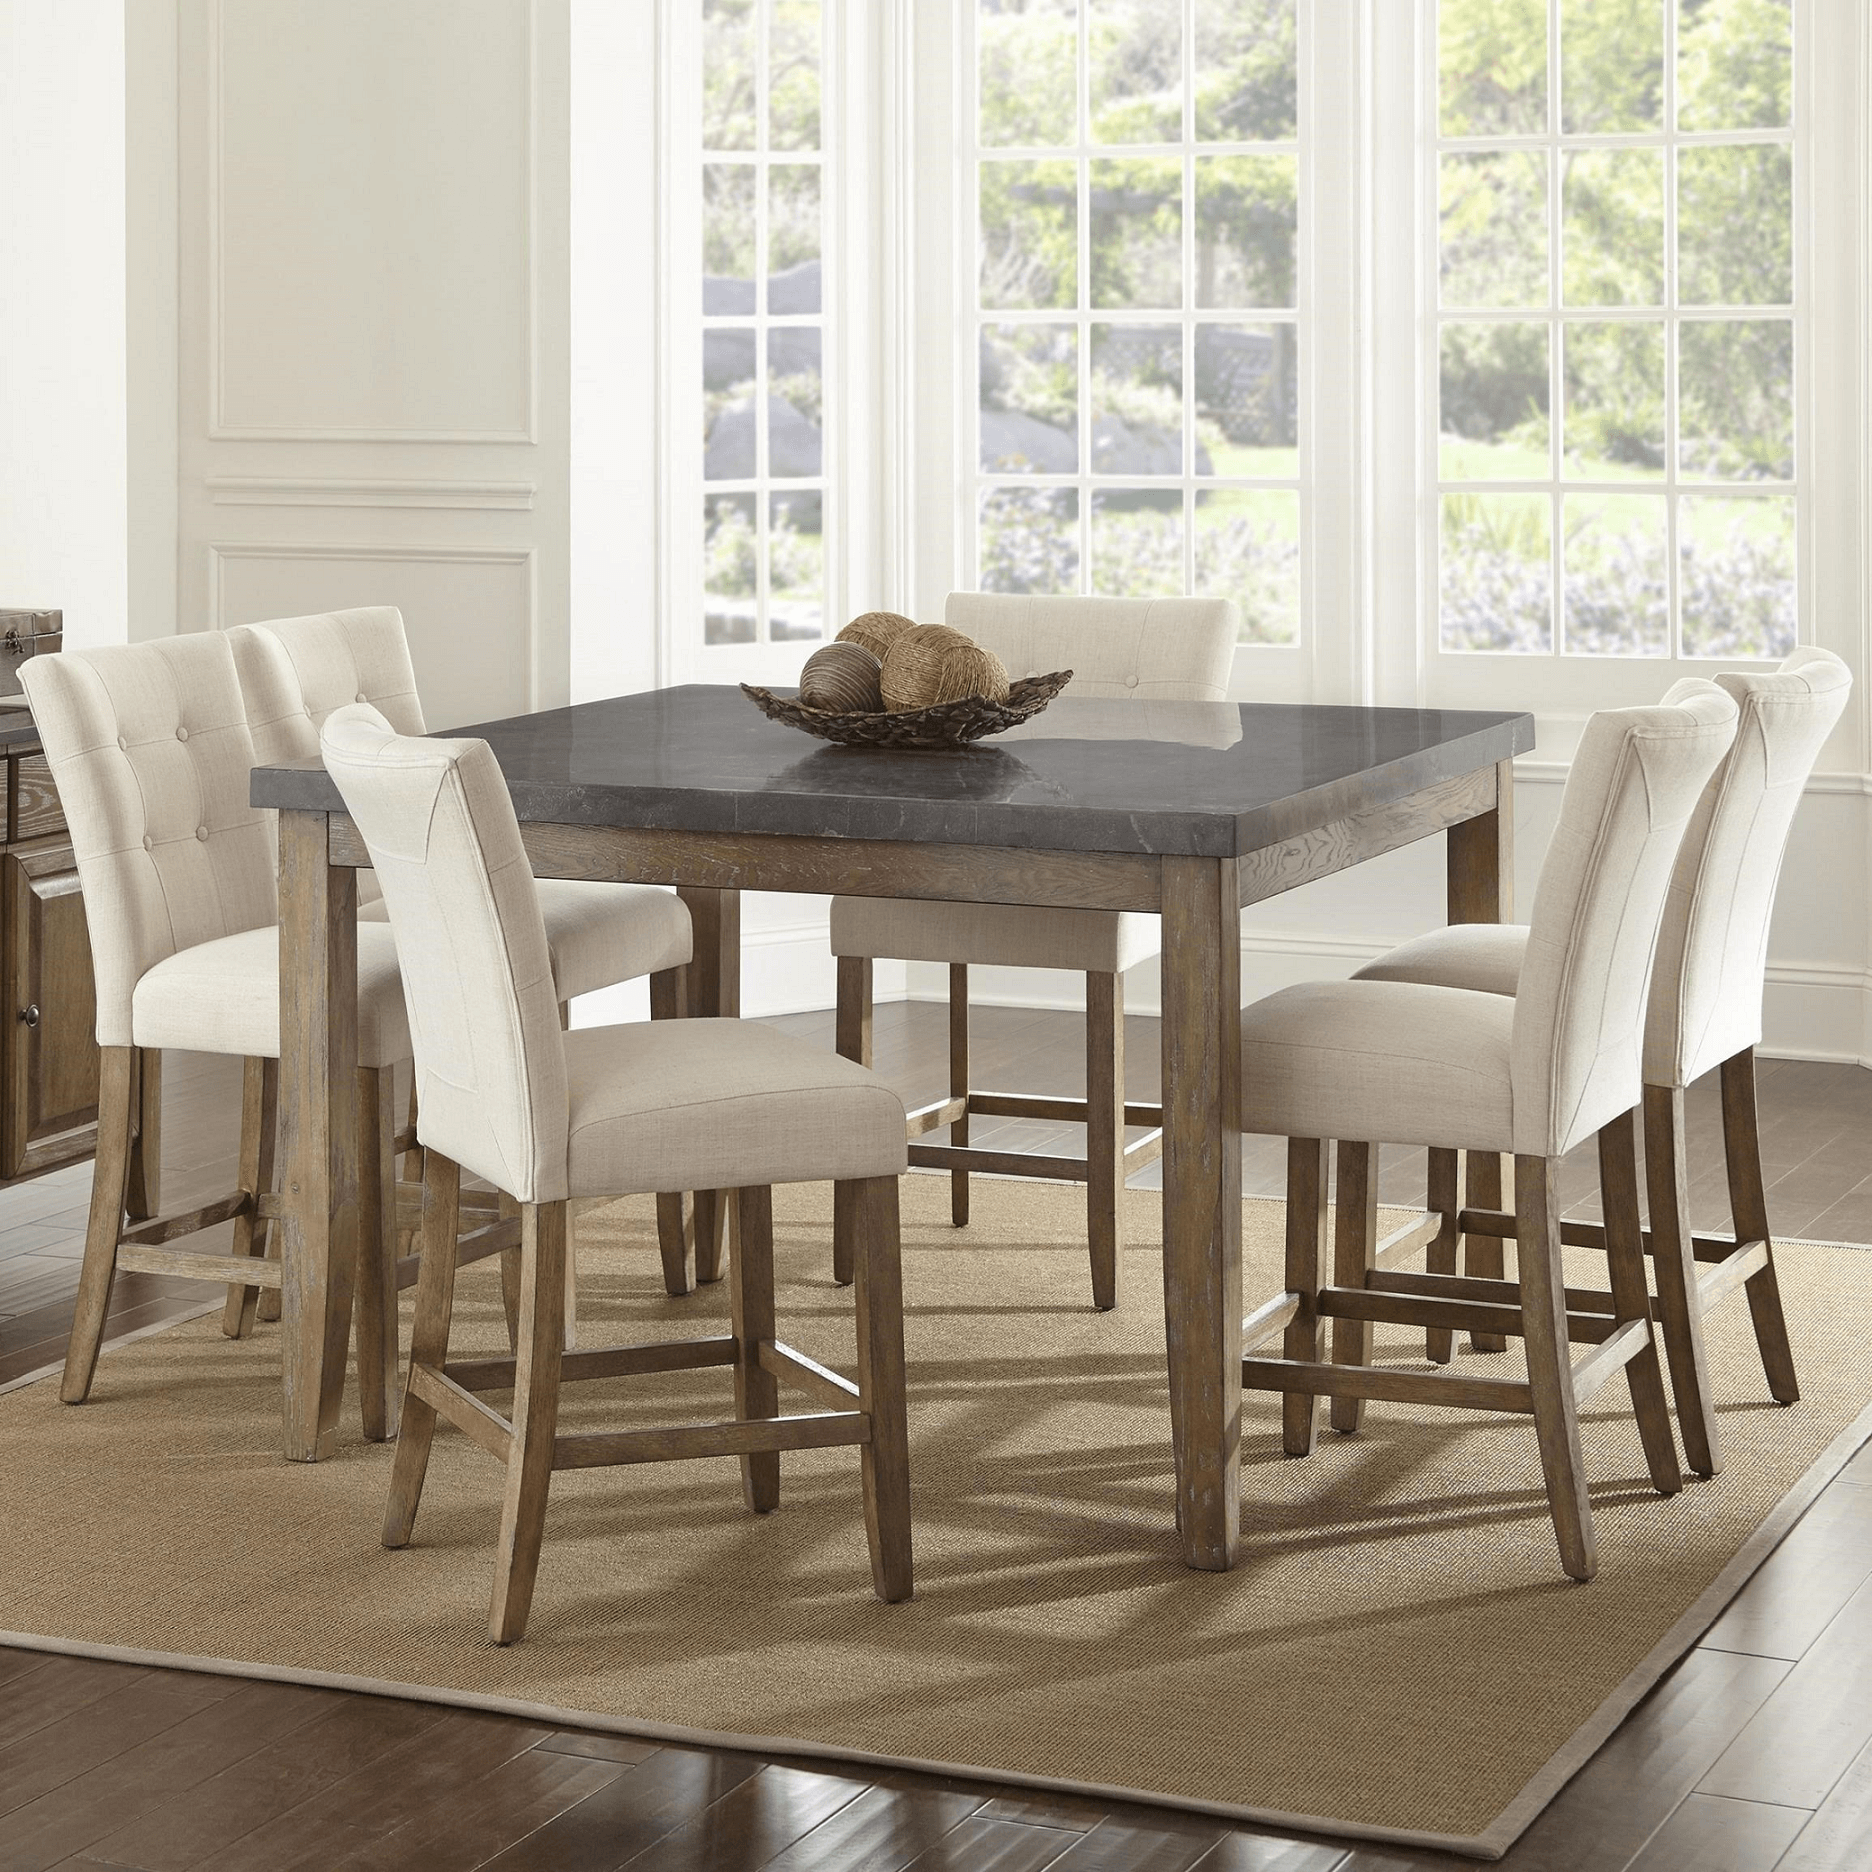 Dining bluestone table and chairs set